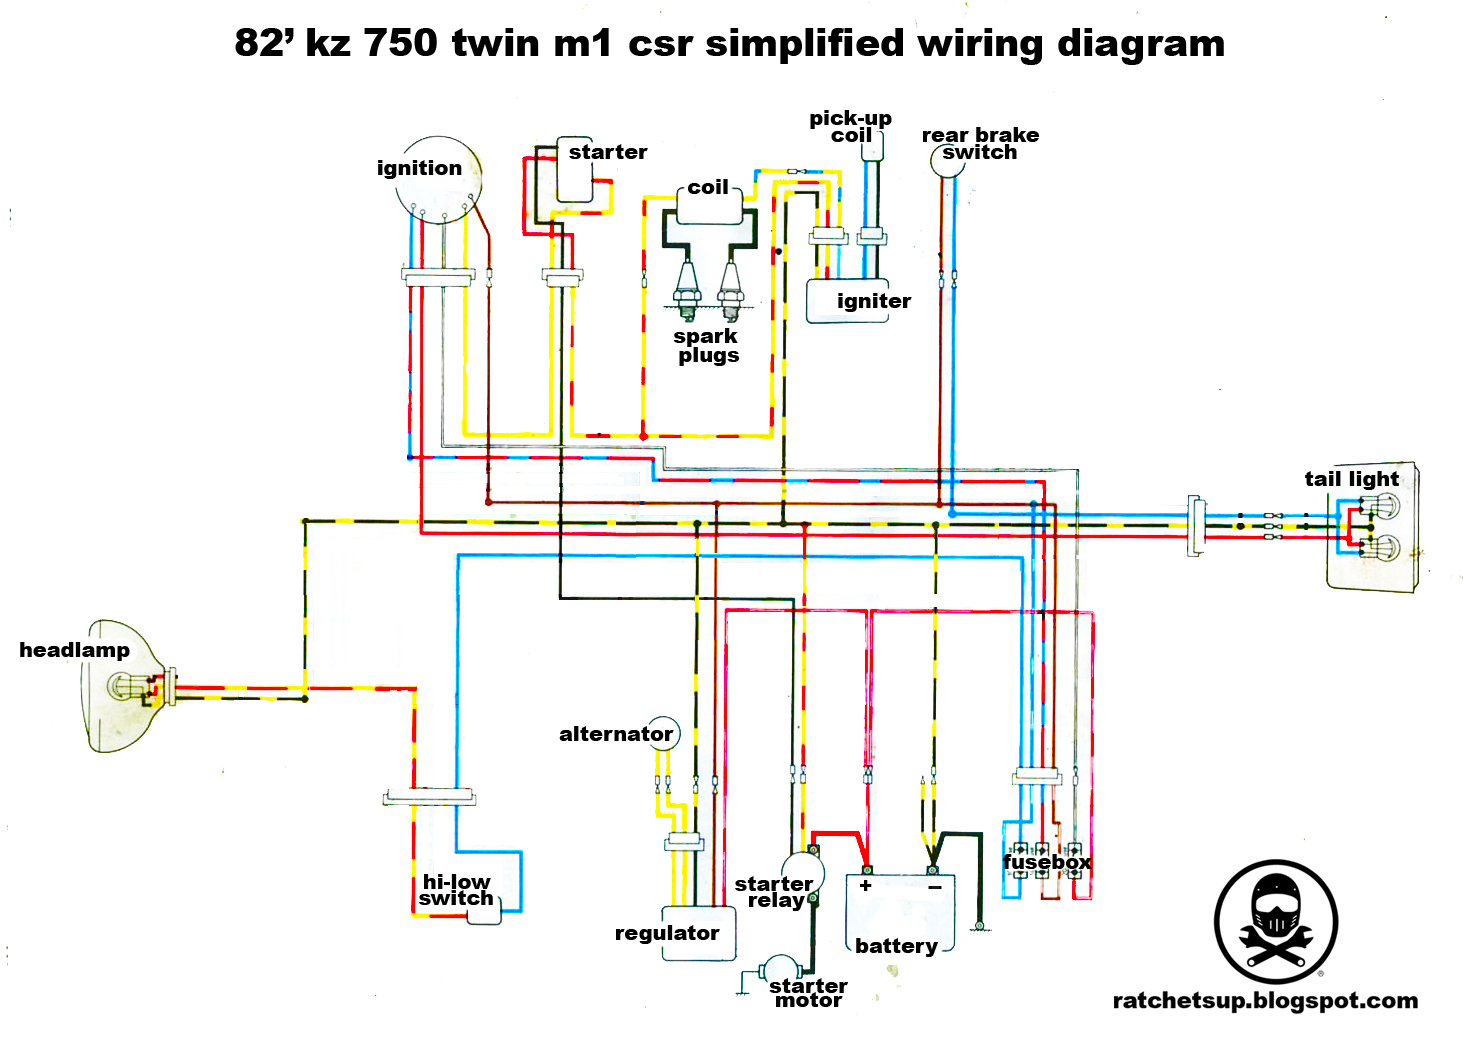 kz750+simple+diagram kz750 wiring diagram 1978 kawasaki k z 750 wiring diagram \u2022 free 1980 kawasaki kz440 wiring diagram at readyjetset.co